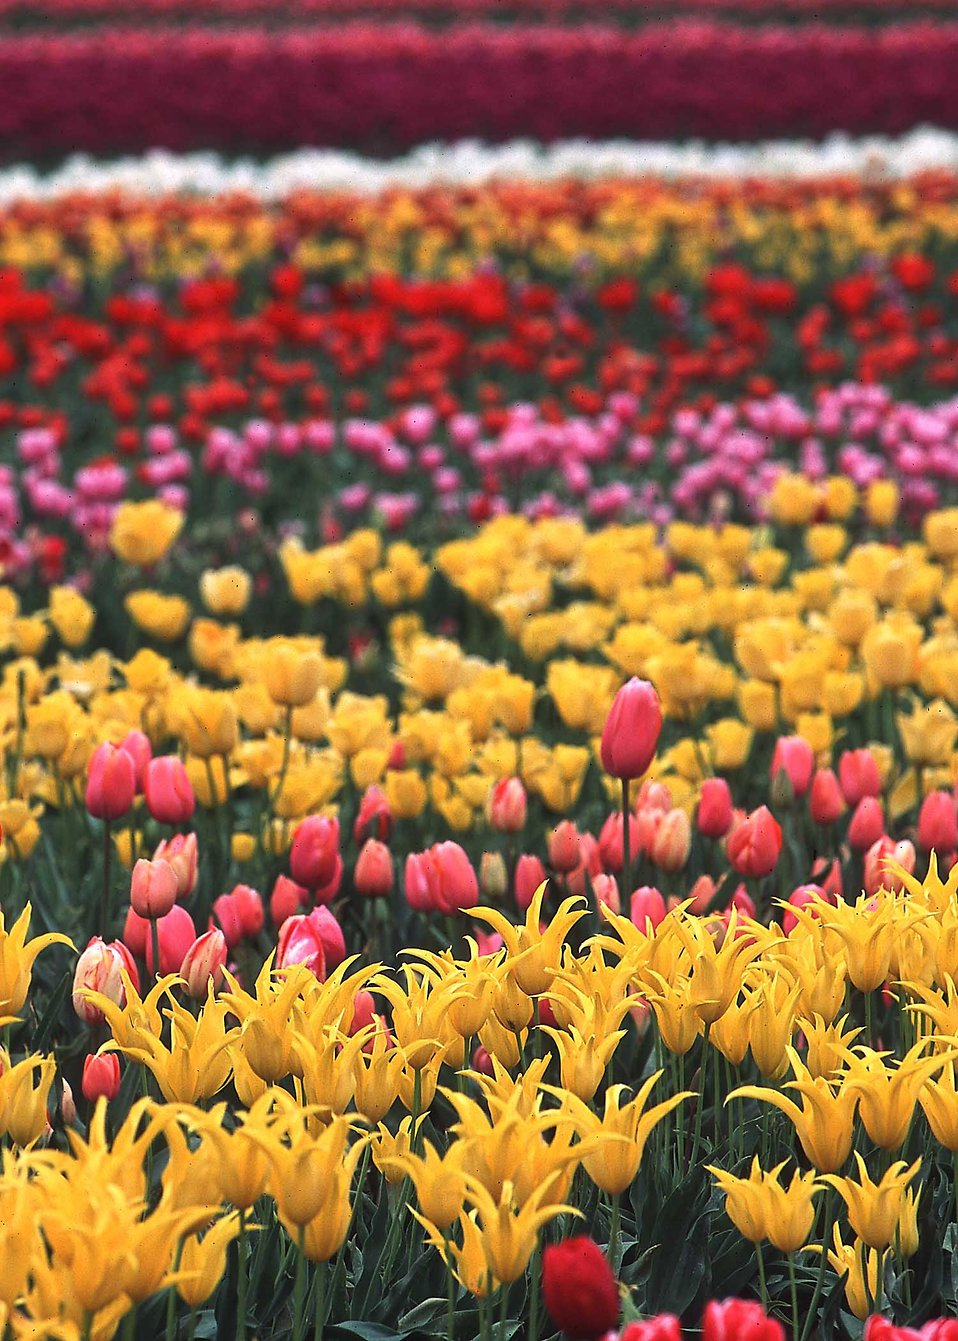 Colorful tulips growing in a field : Free Stock Photo